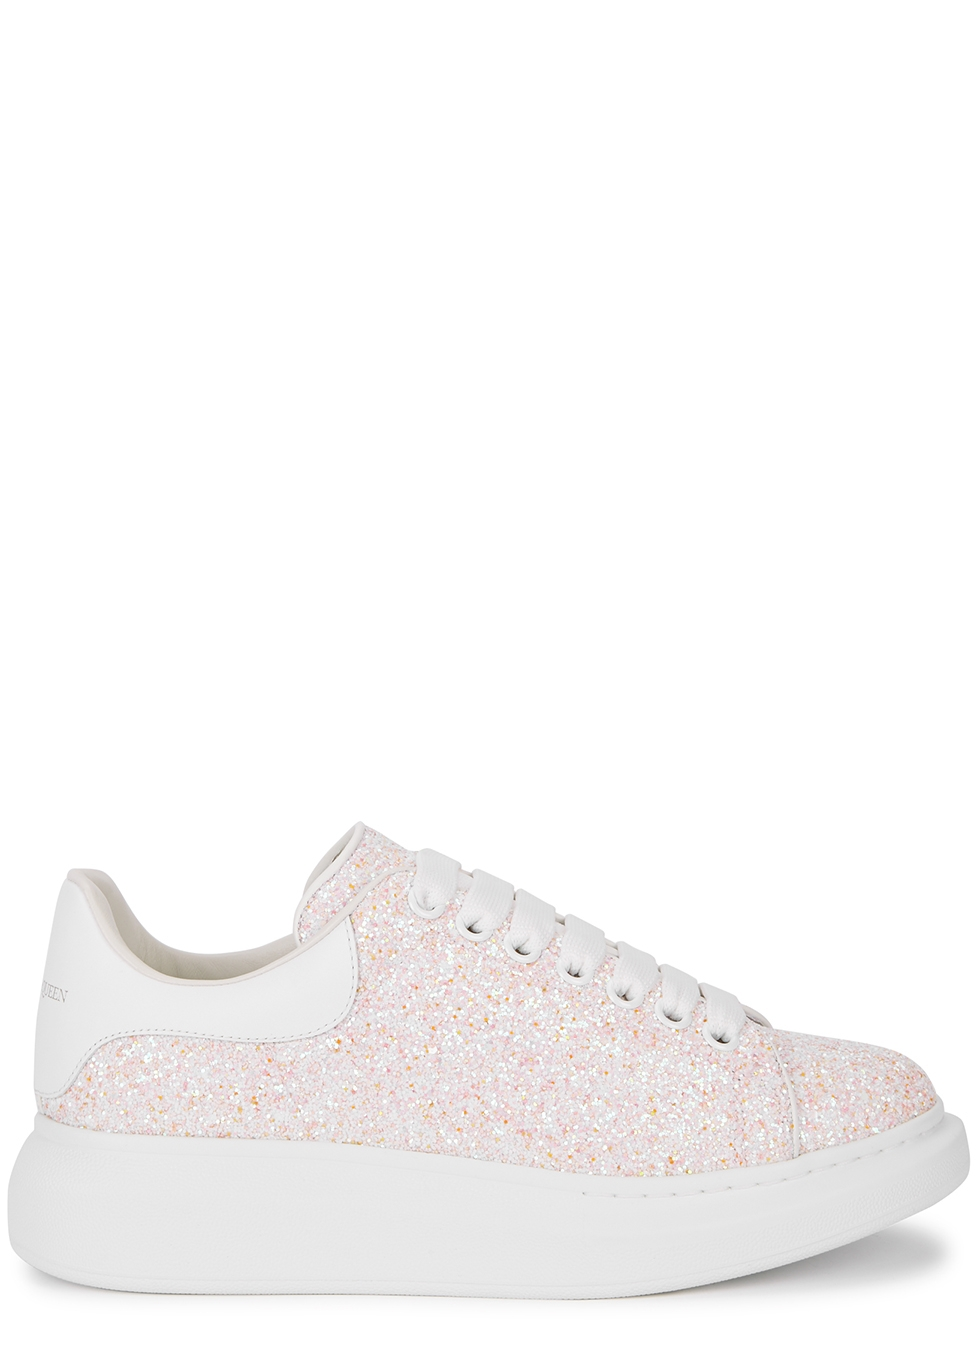 Larry pink glittered leather sneakers